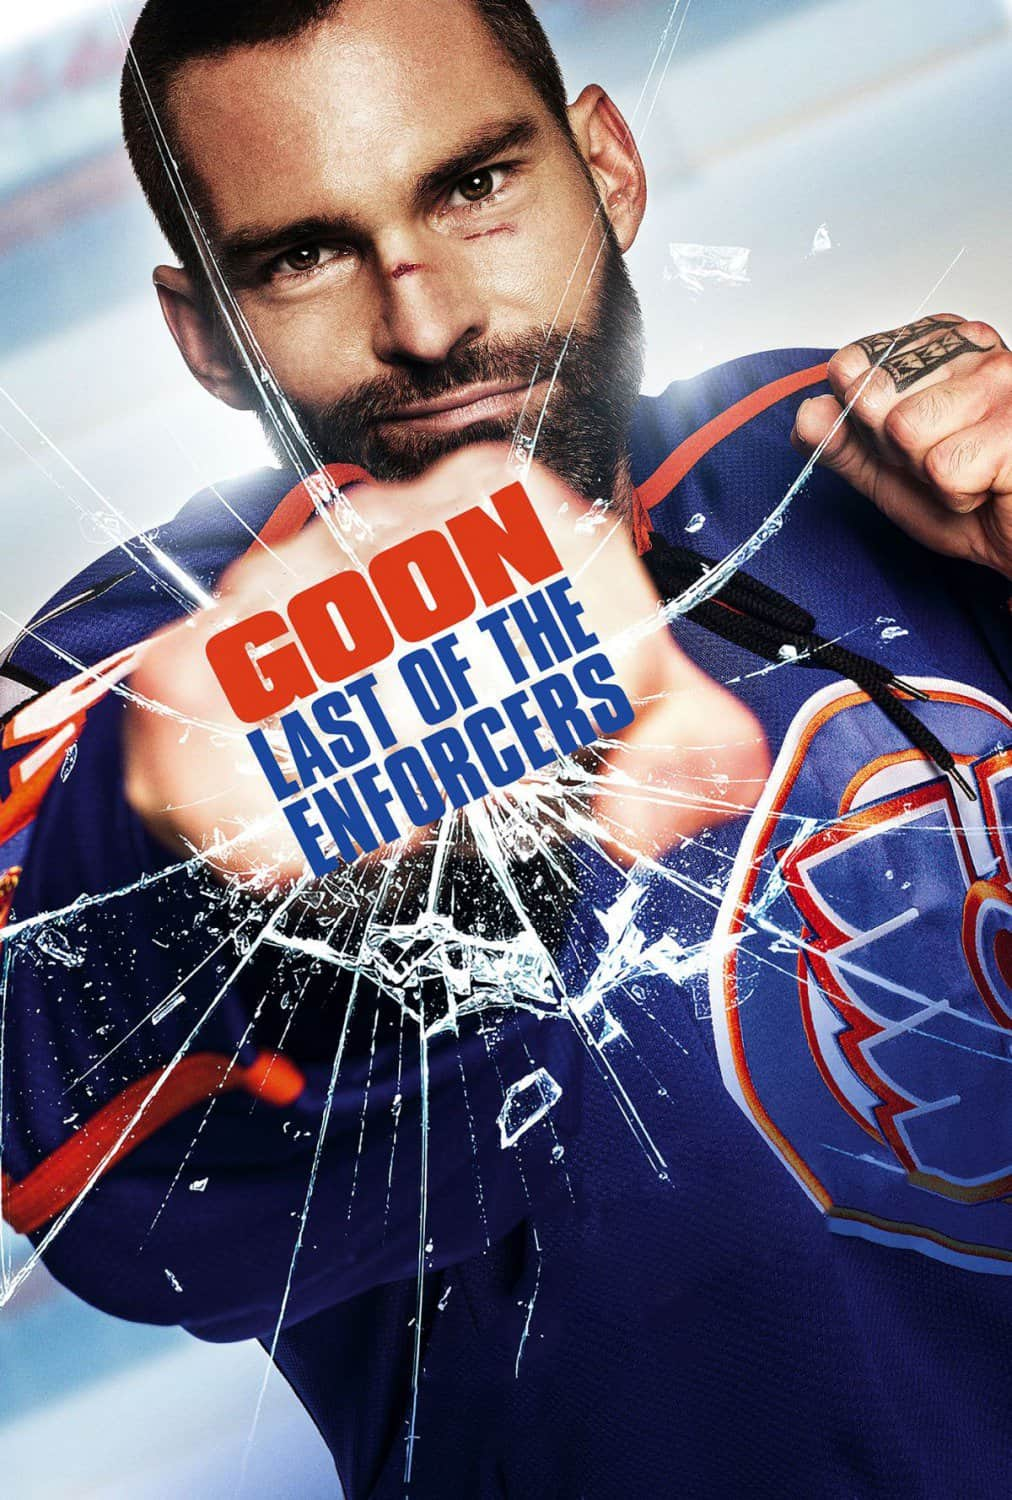 Goon: Last of the Enforcers, 2017